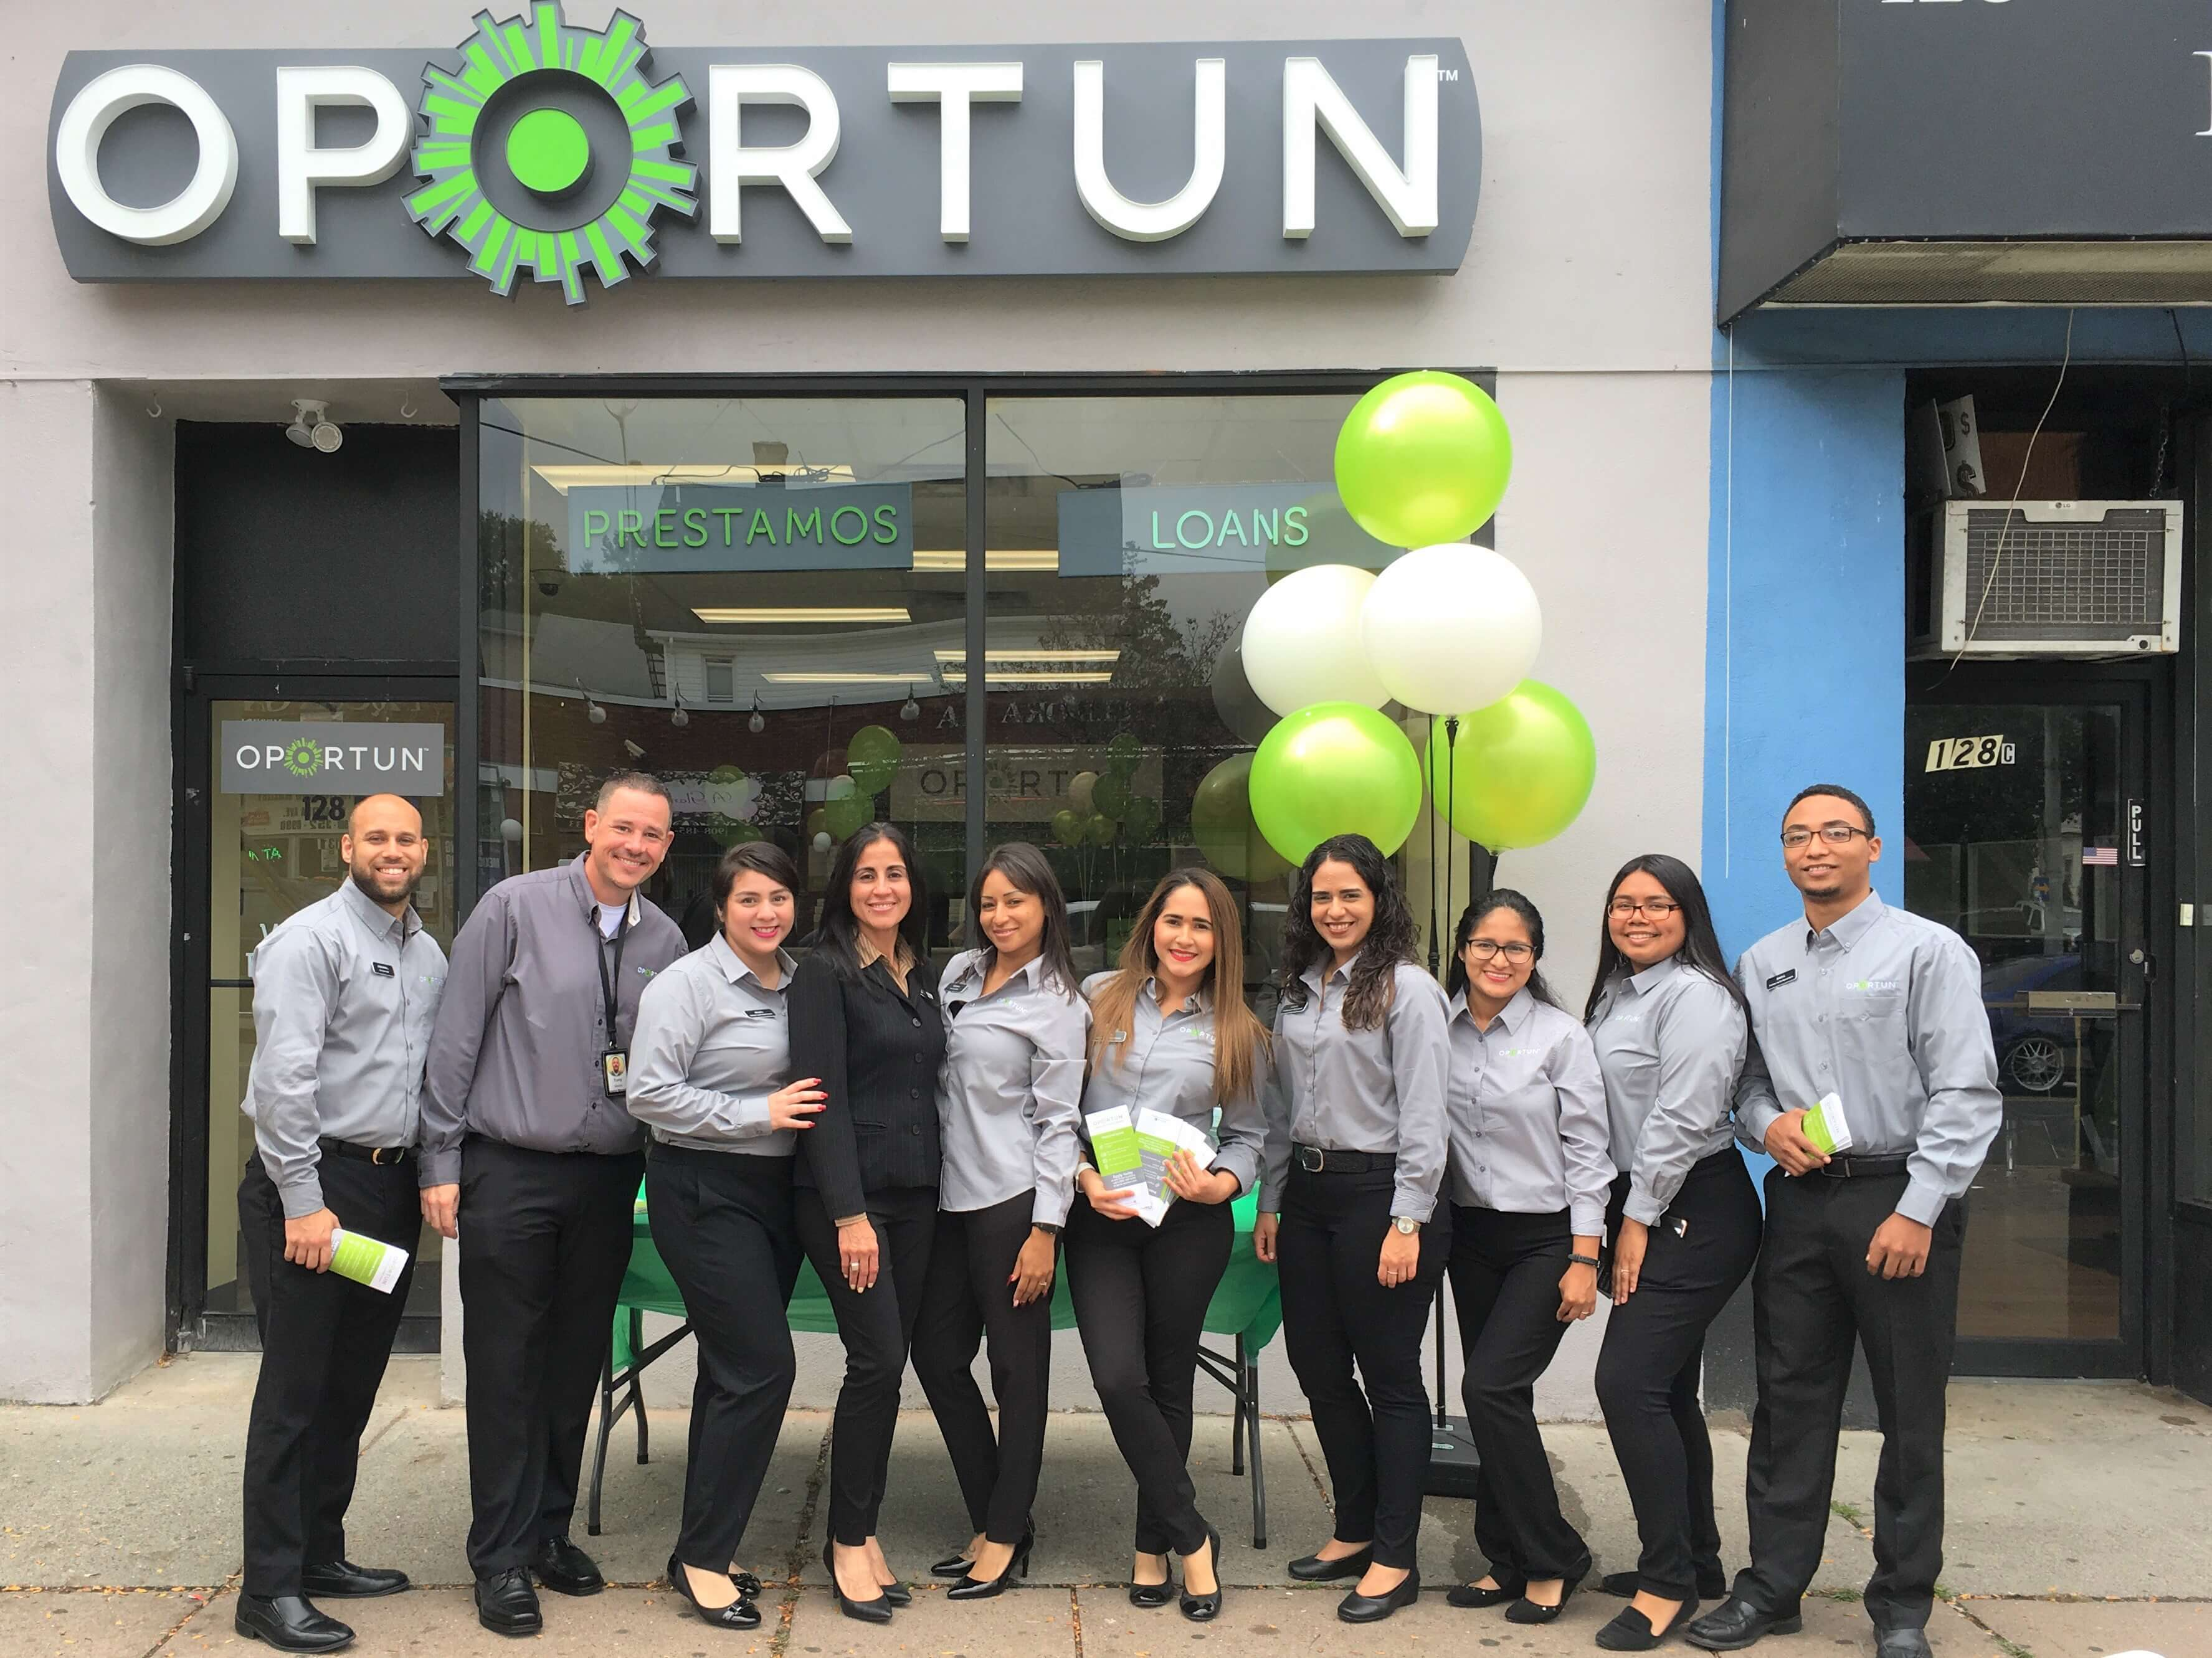 Oportun employees celebrate the opening of a new Oportun location.